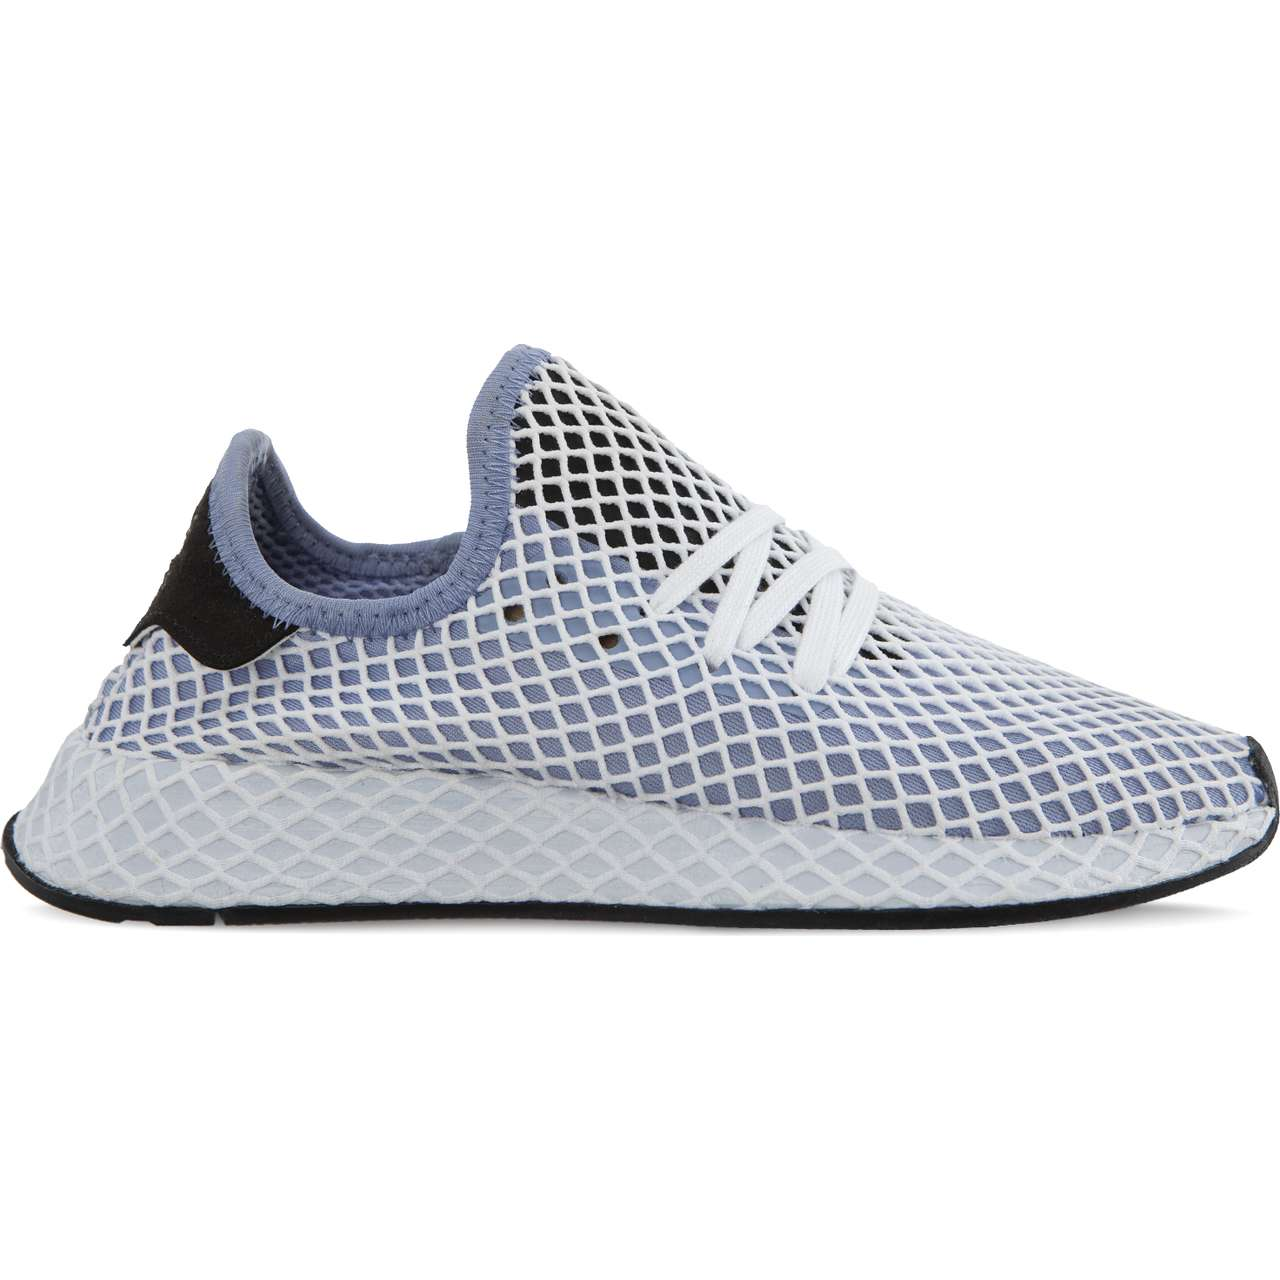 more photos 4c837 dc1a6 Buty adidas brsmallDEERUPT RUNNER W CHALK BLUECHALK ...